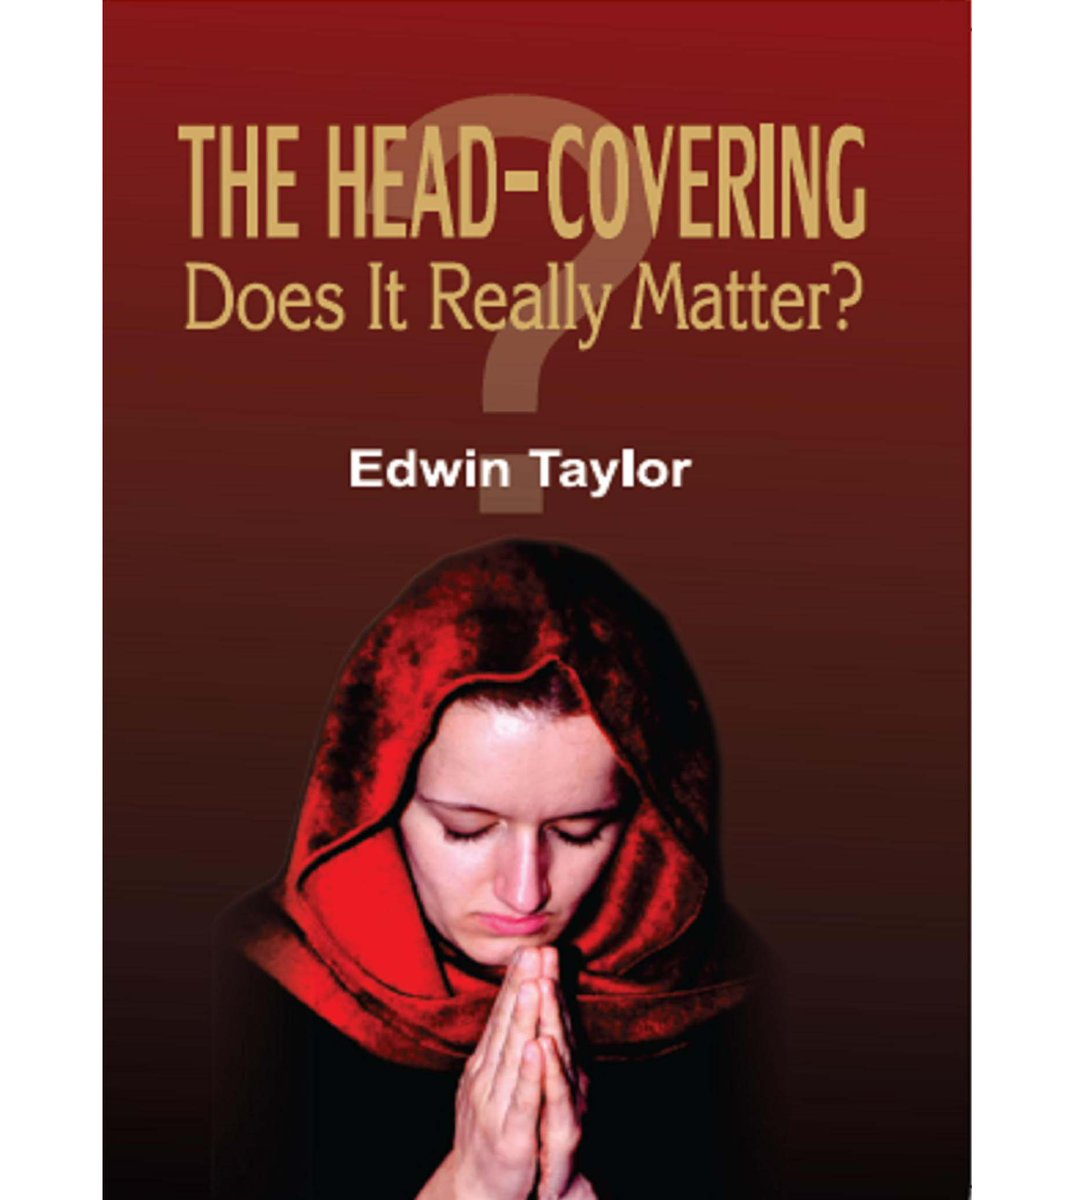 test Twitter Media - For hundreds of years it was normal and accepted that women covered their  heads when they came into church gatherings of any kind. Recently many have abandoned this practice. This book explains clearly why Christian women should cover their heads in church gatherings.#newbook https://t.co/6KSoCQ5IaW